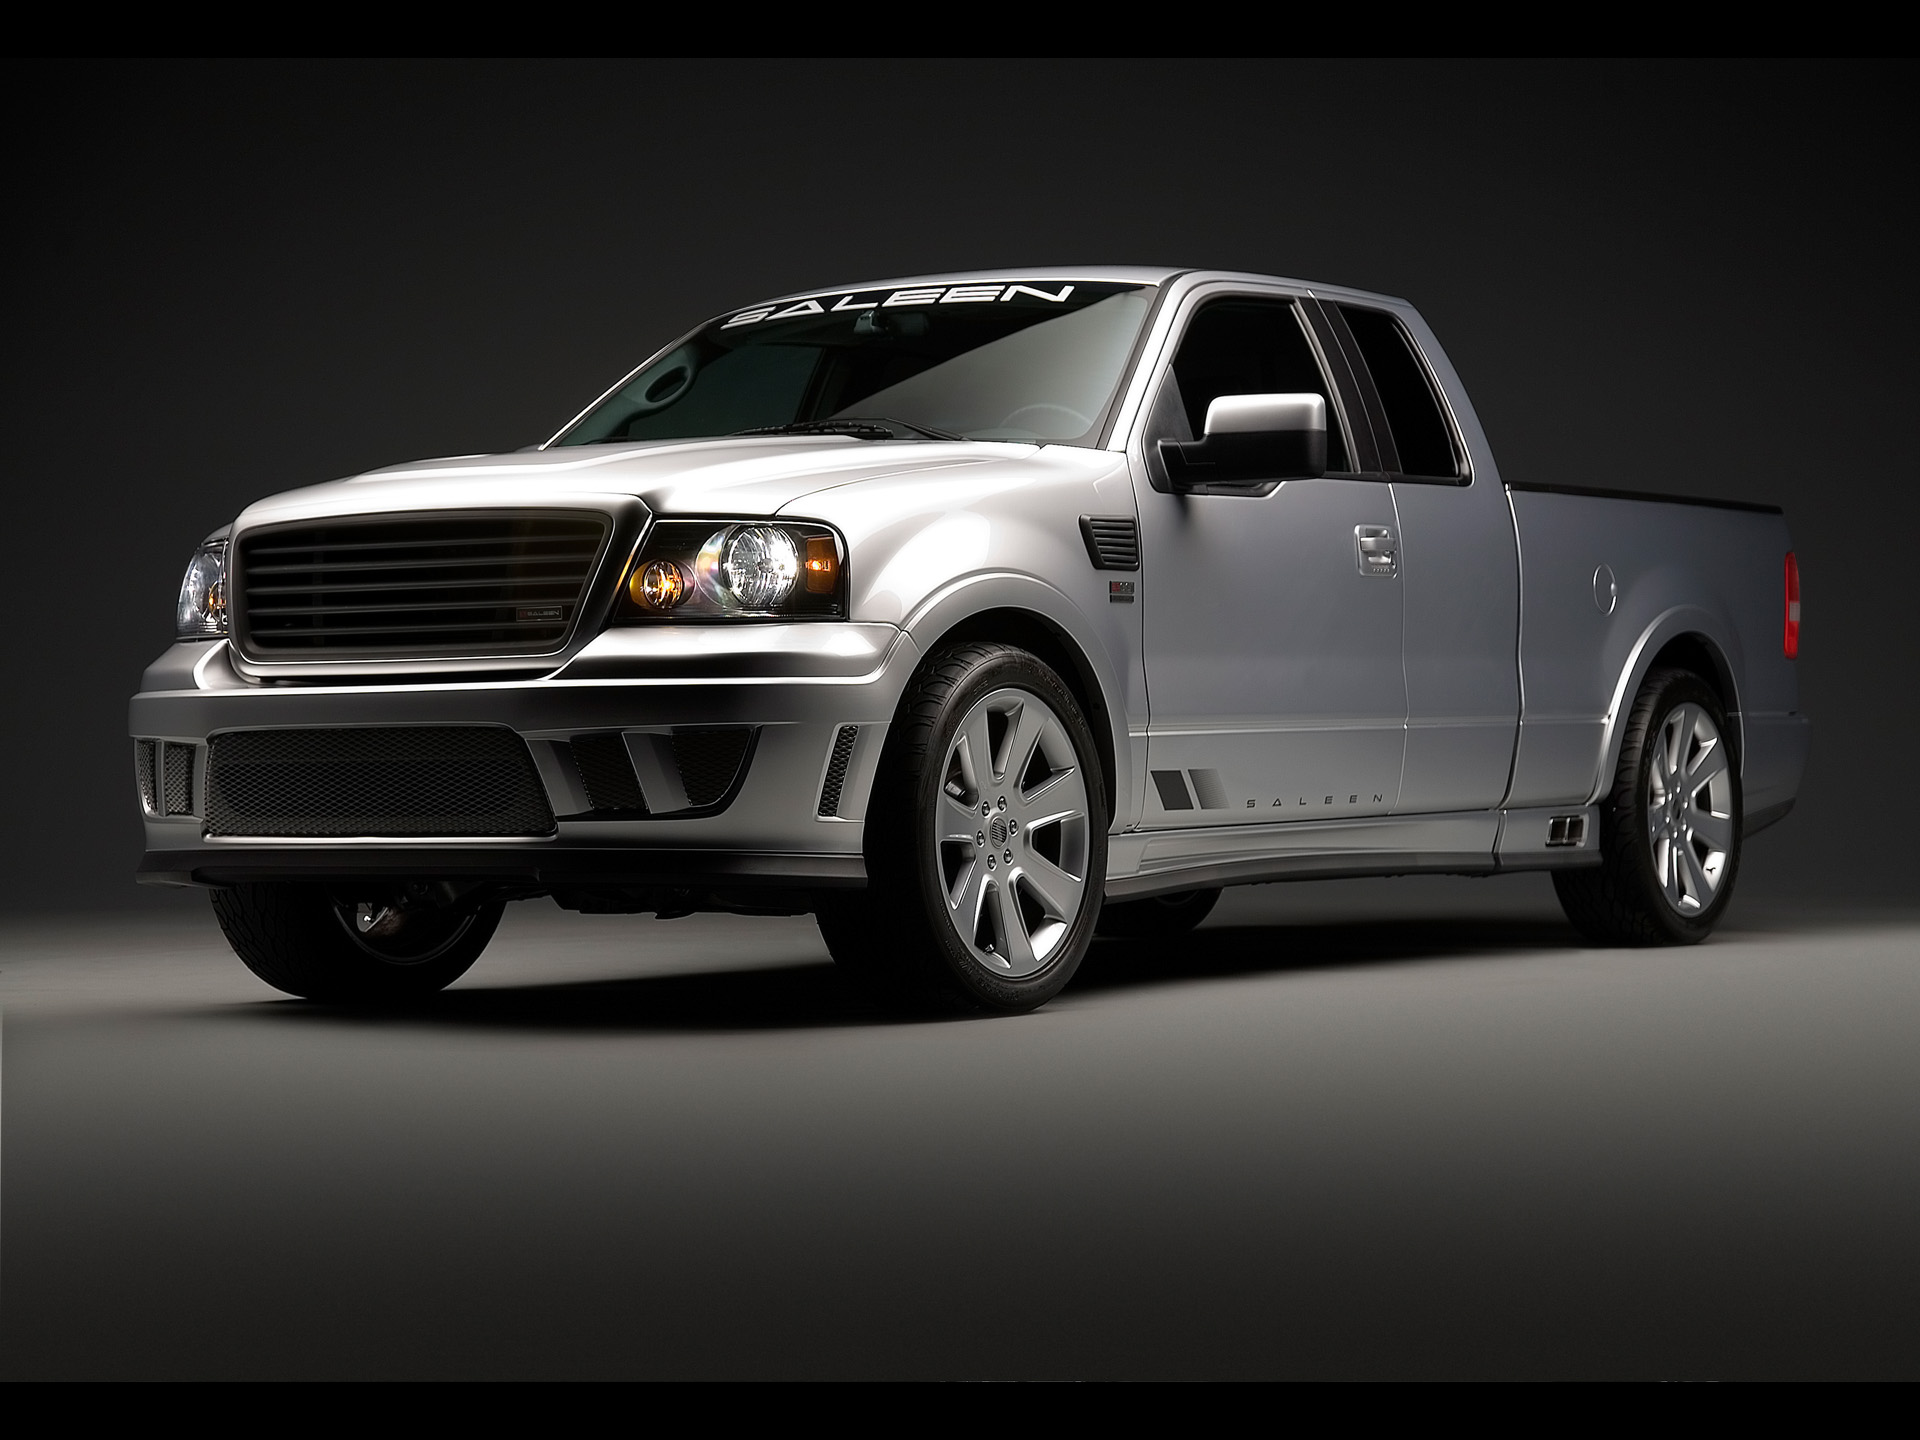 2007 saleen s331 sport truck ford f 150 pickup muscle supertruck g wallpaper 1920x1440 113949 wallpaperup